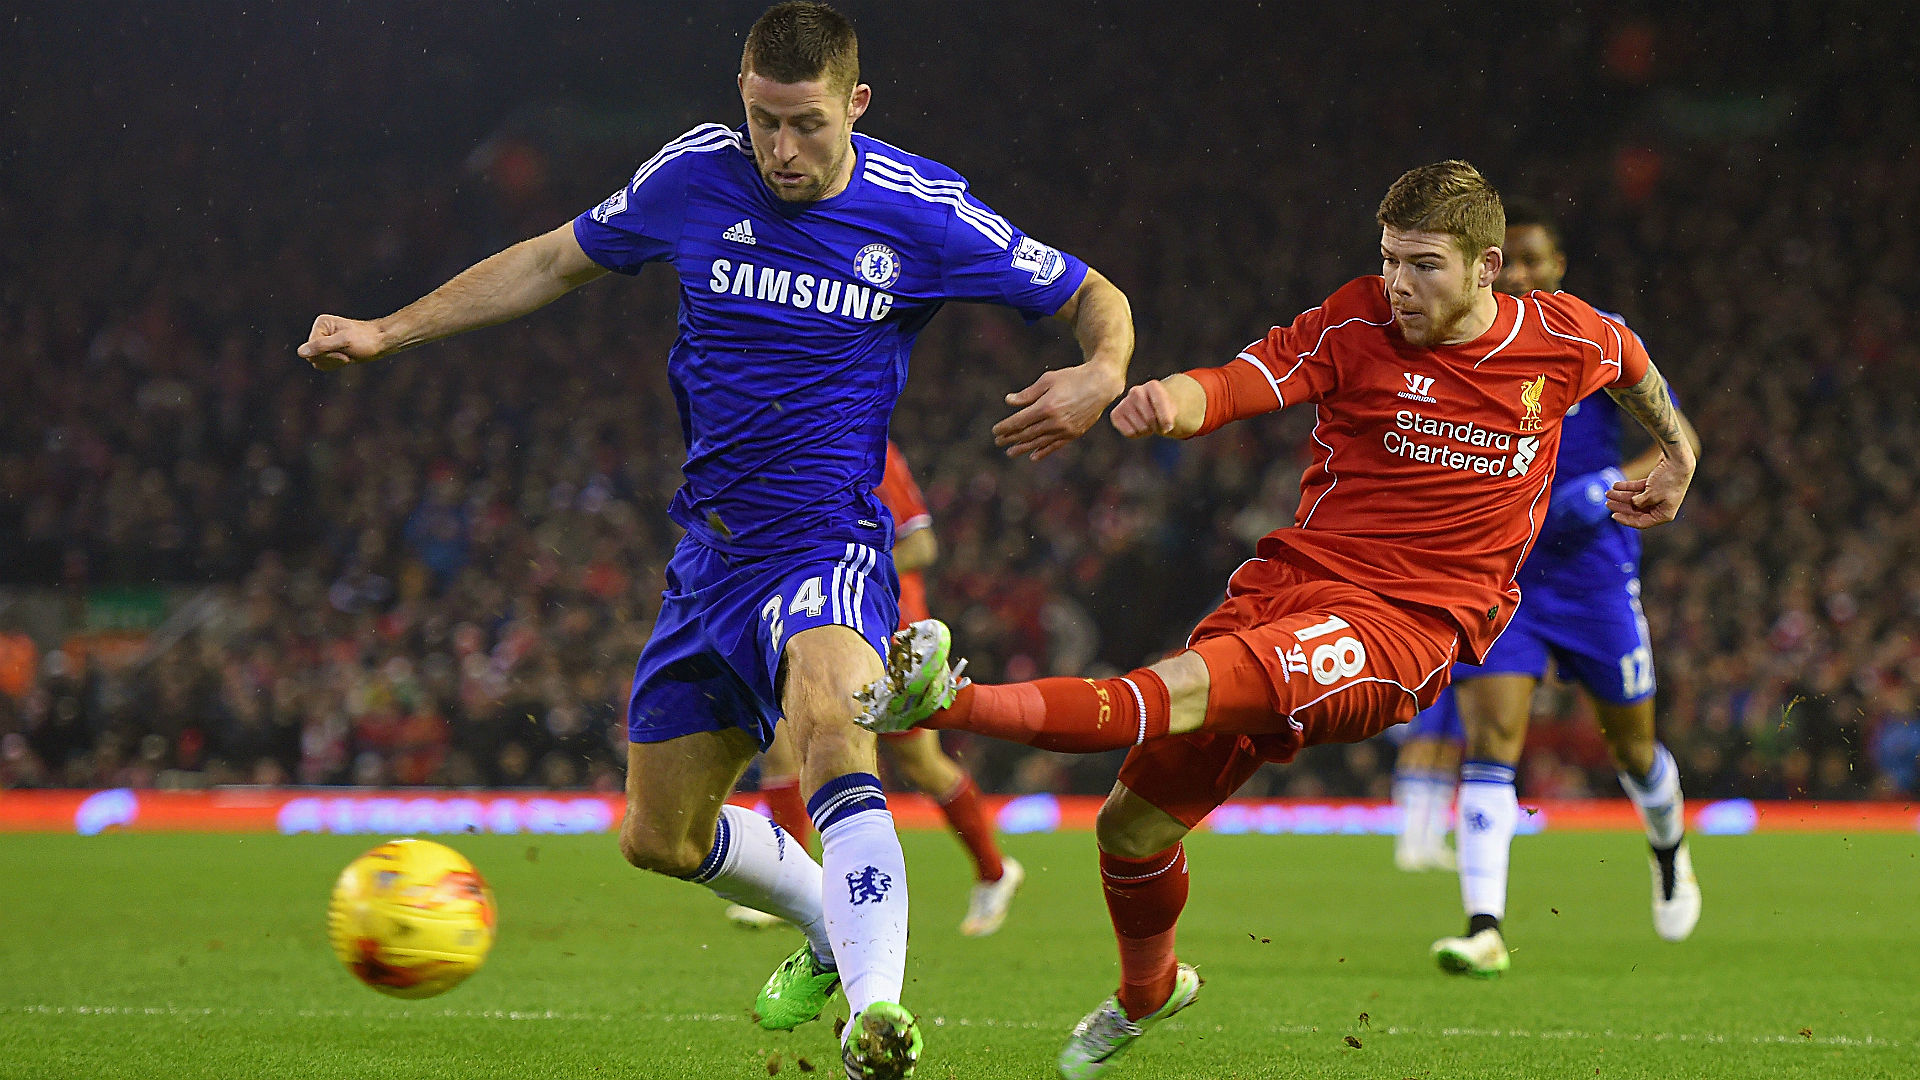 Chelsea vs. Liverpool betting lines and picks – Reds look to take advantage of vulnerable Blues